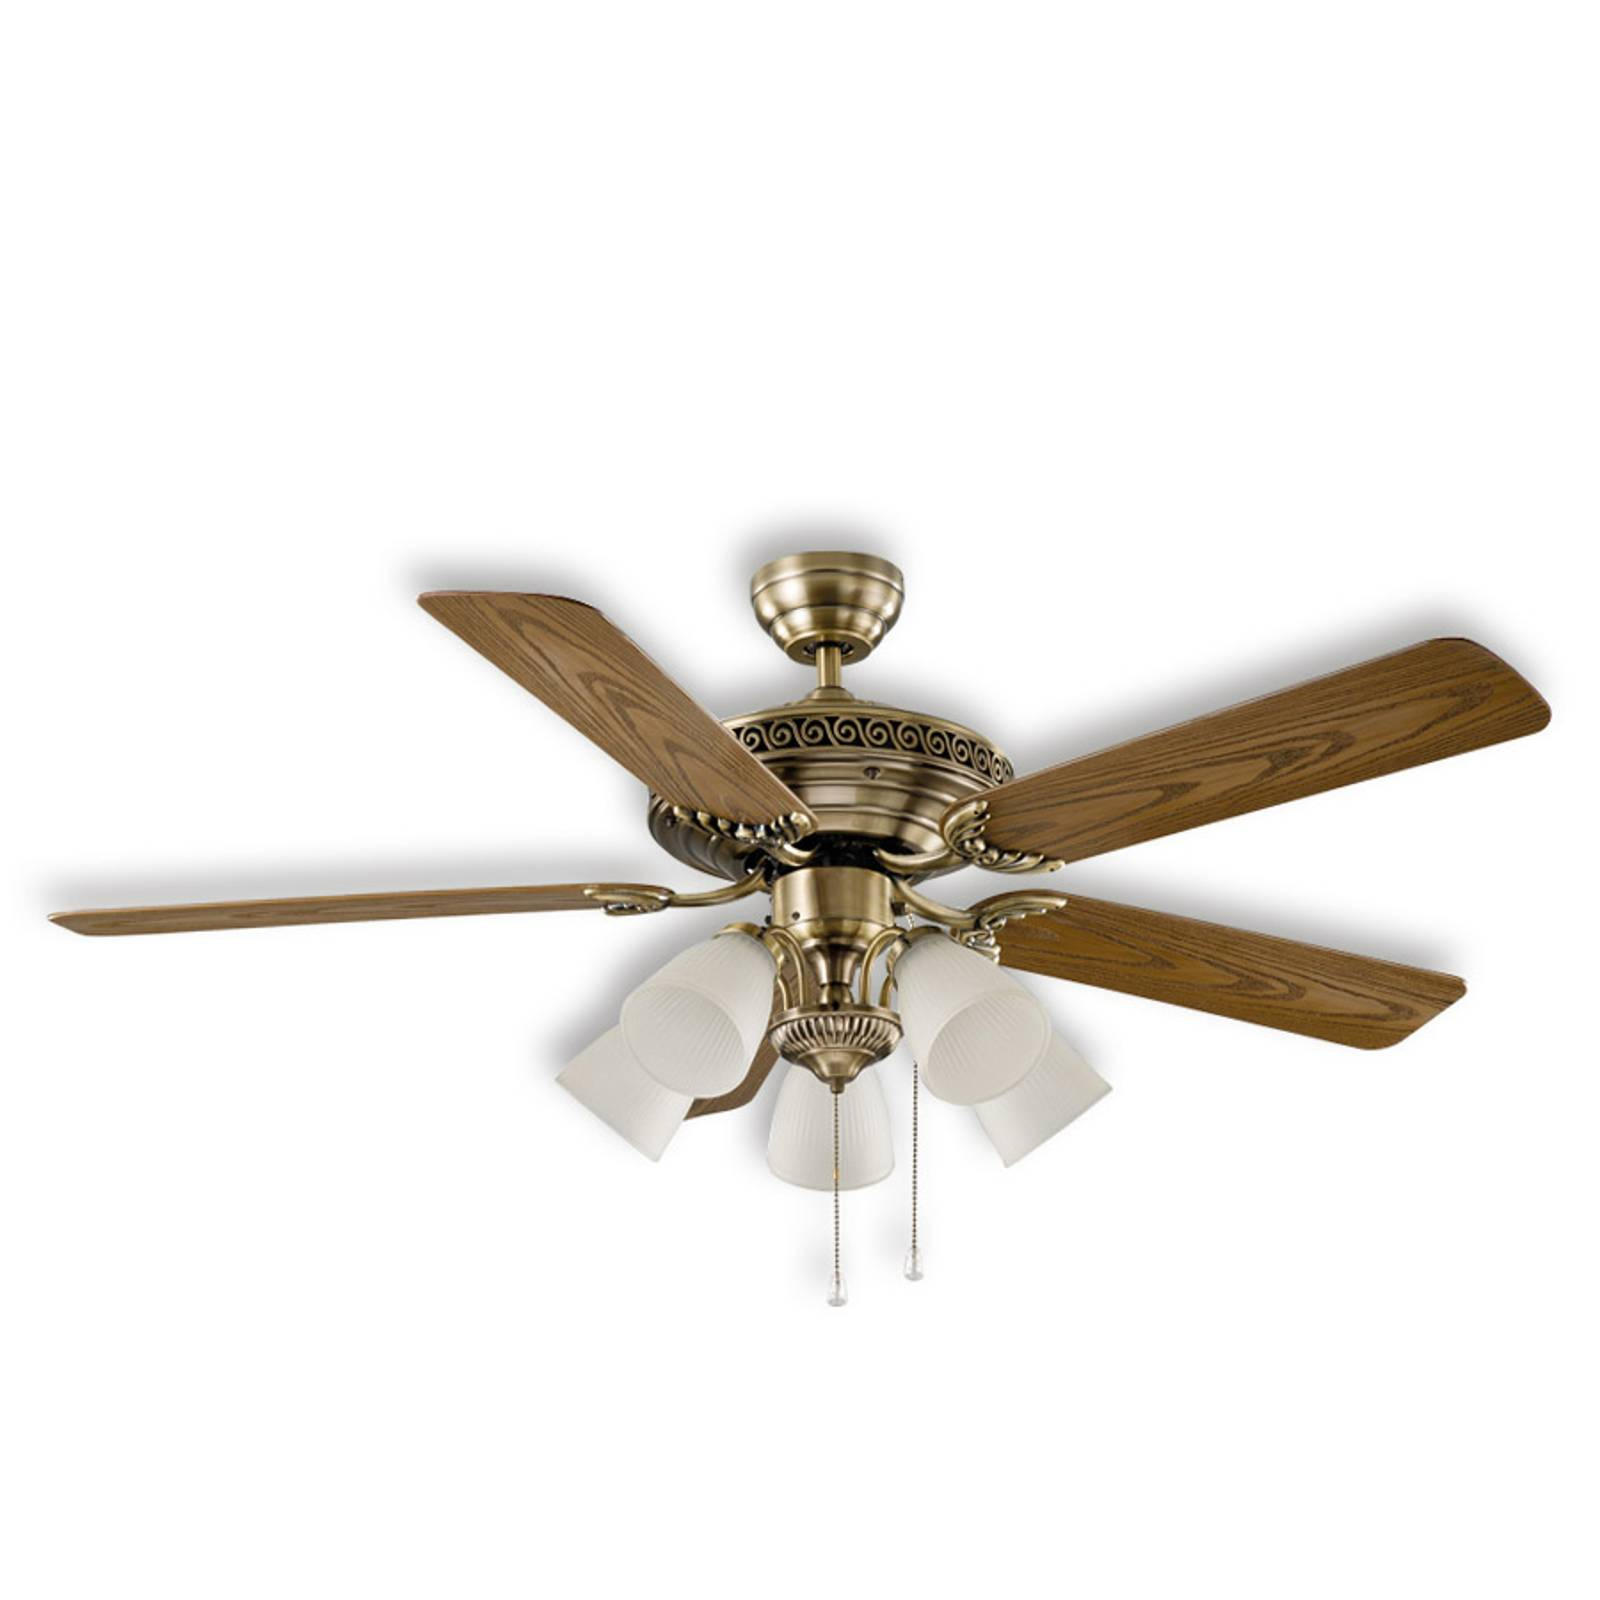 Centurion ceiling fan, antique brass from CASAFAN